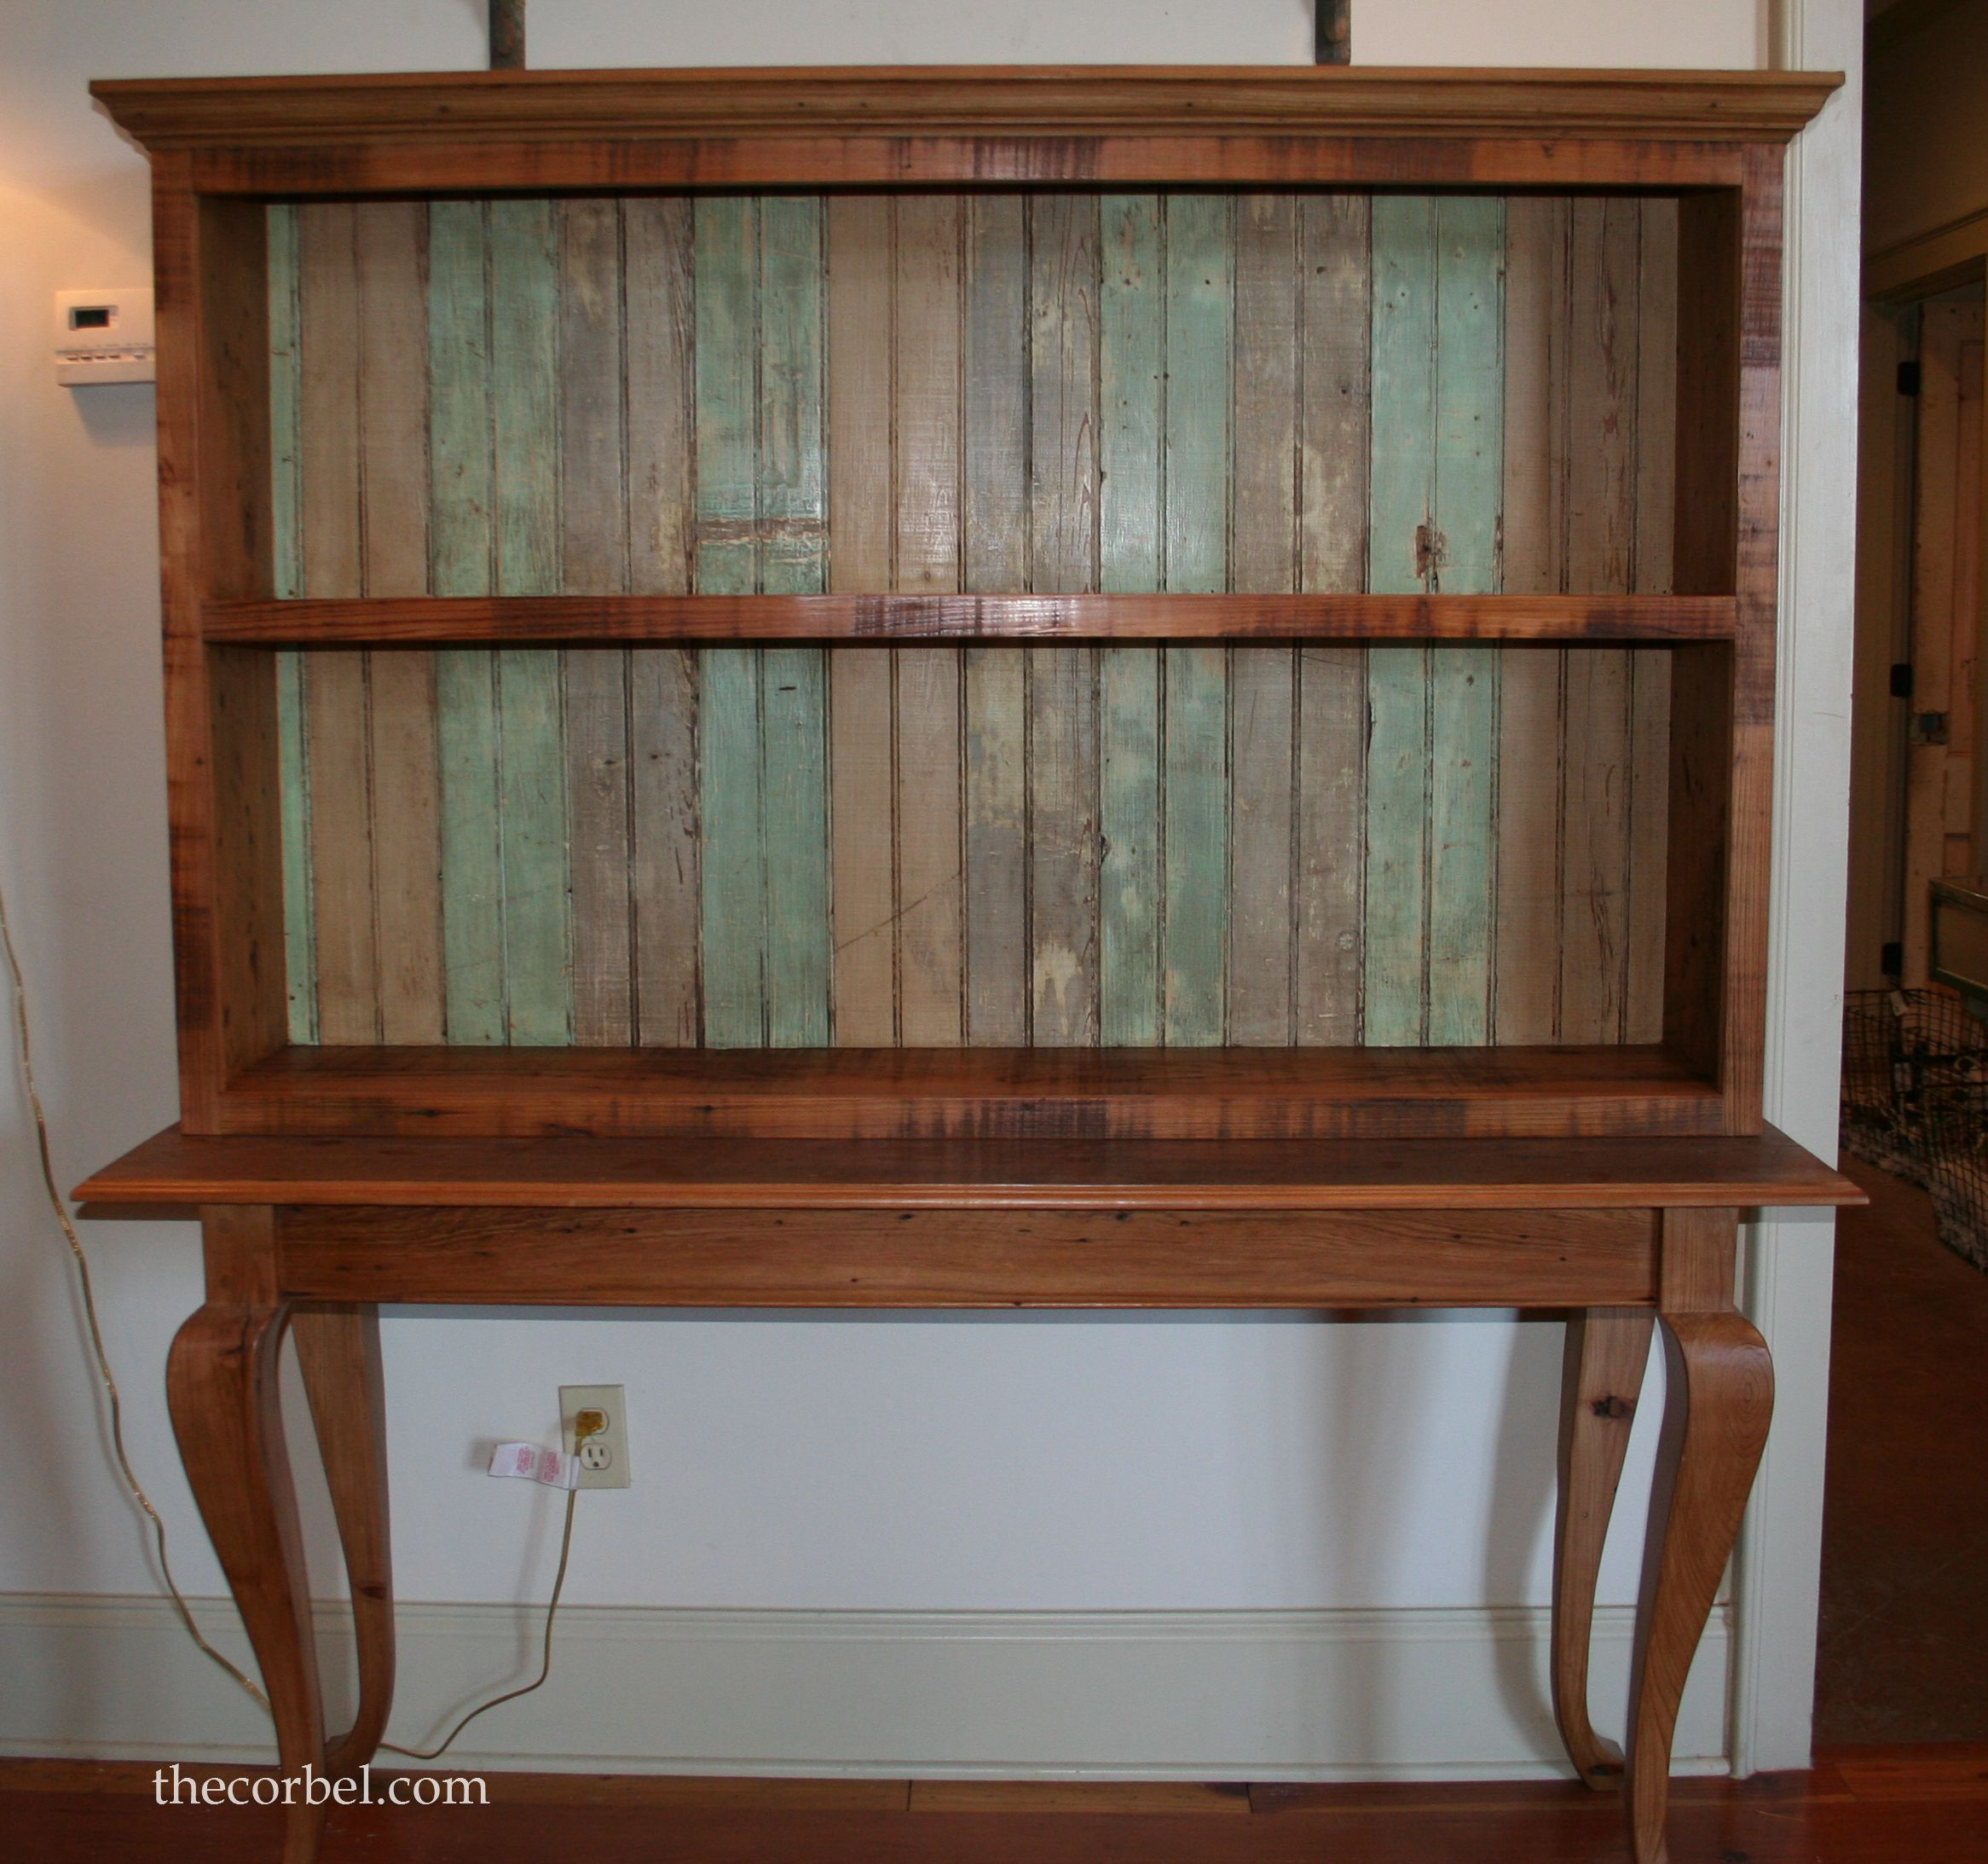 custom beadboard shelf unit WM.jpg